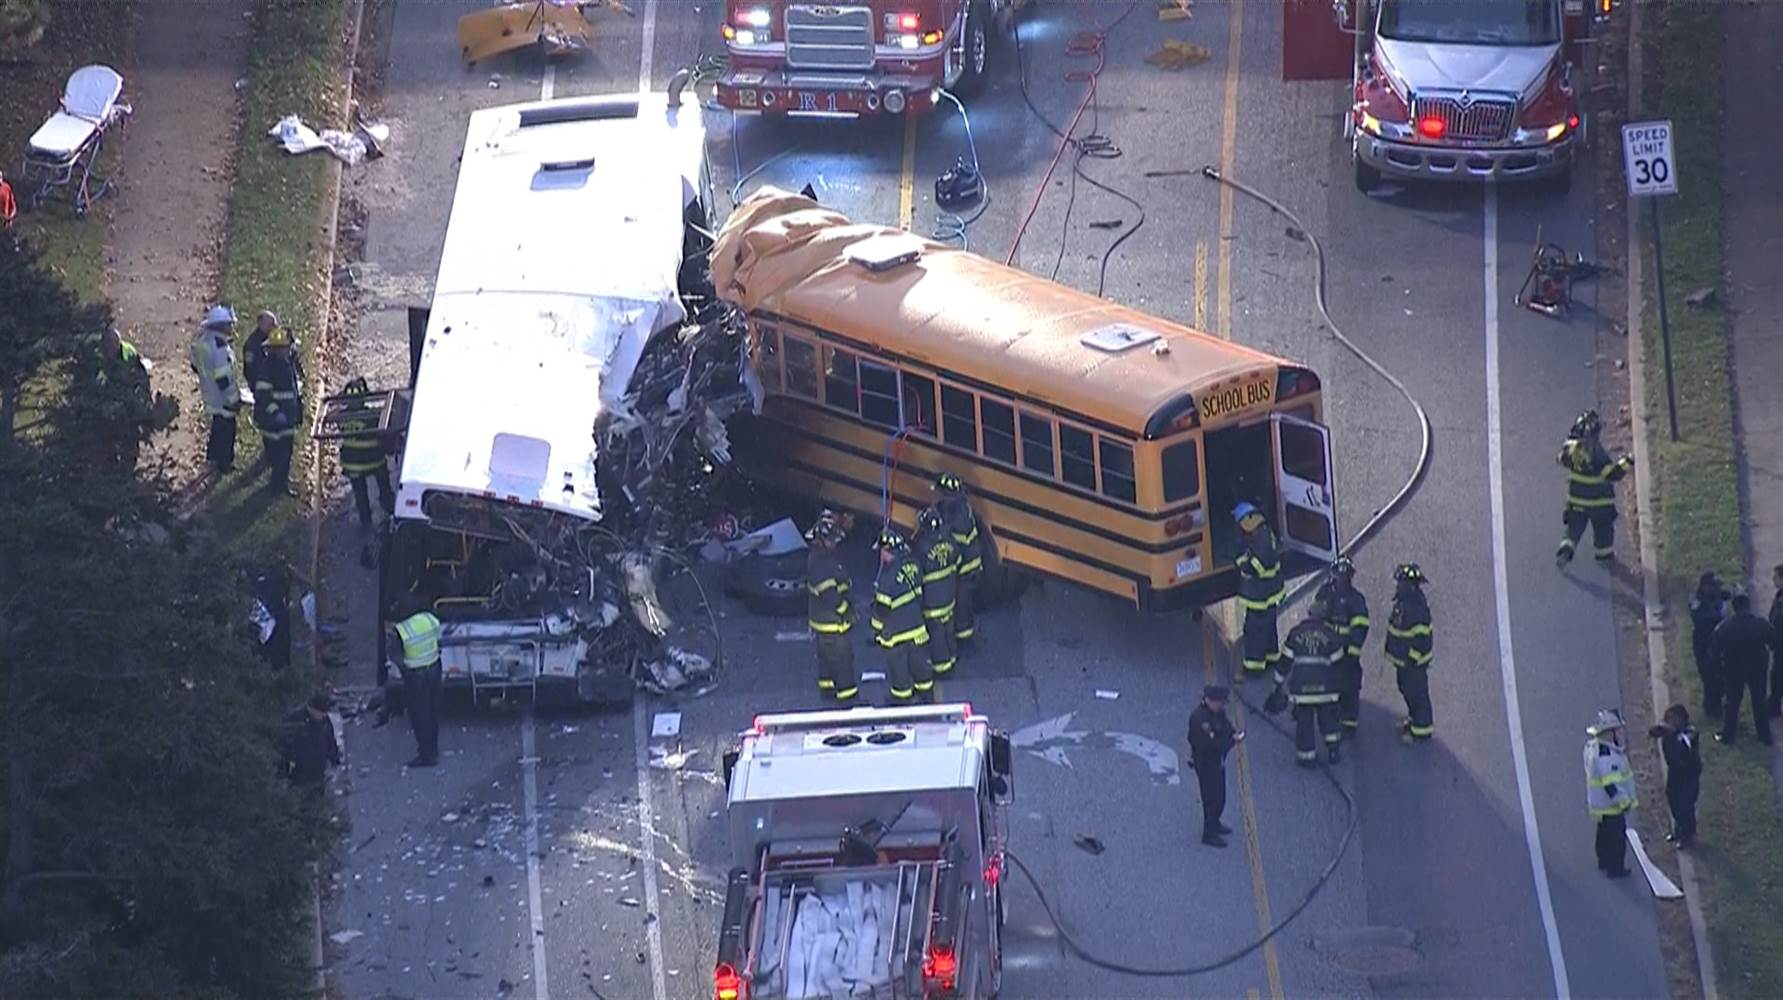 Dottie rambo bus accident photos Before Parkland, Santa Fe and ere Was